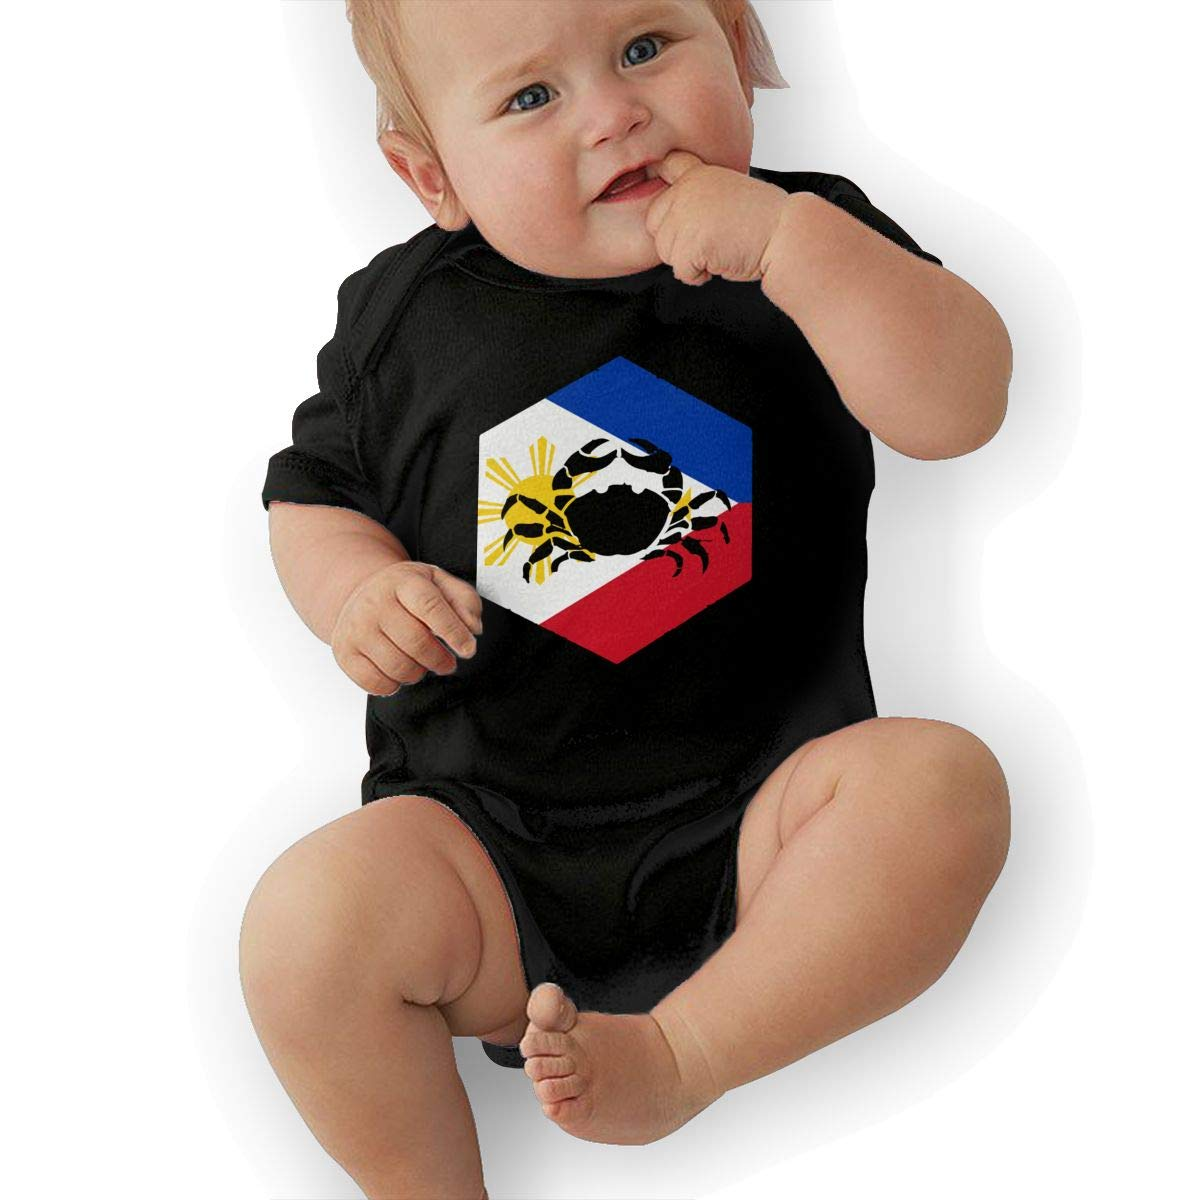 Suit 6-24 Months Black TAOHJS97 Baby Girls Cancer Philippines Short Sleeve Climbing Clothes Pajamas Sleepwear